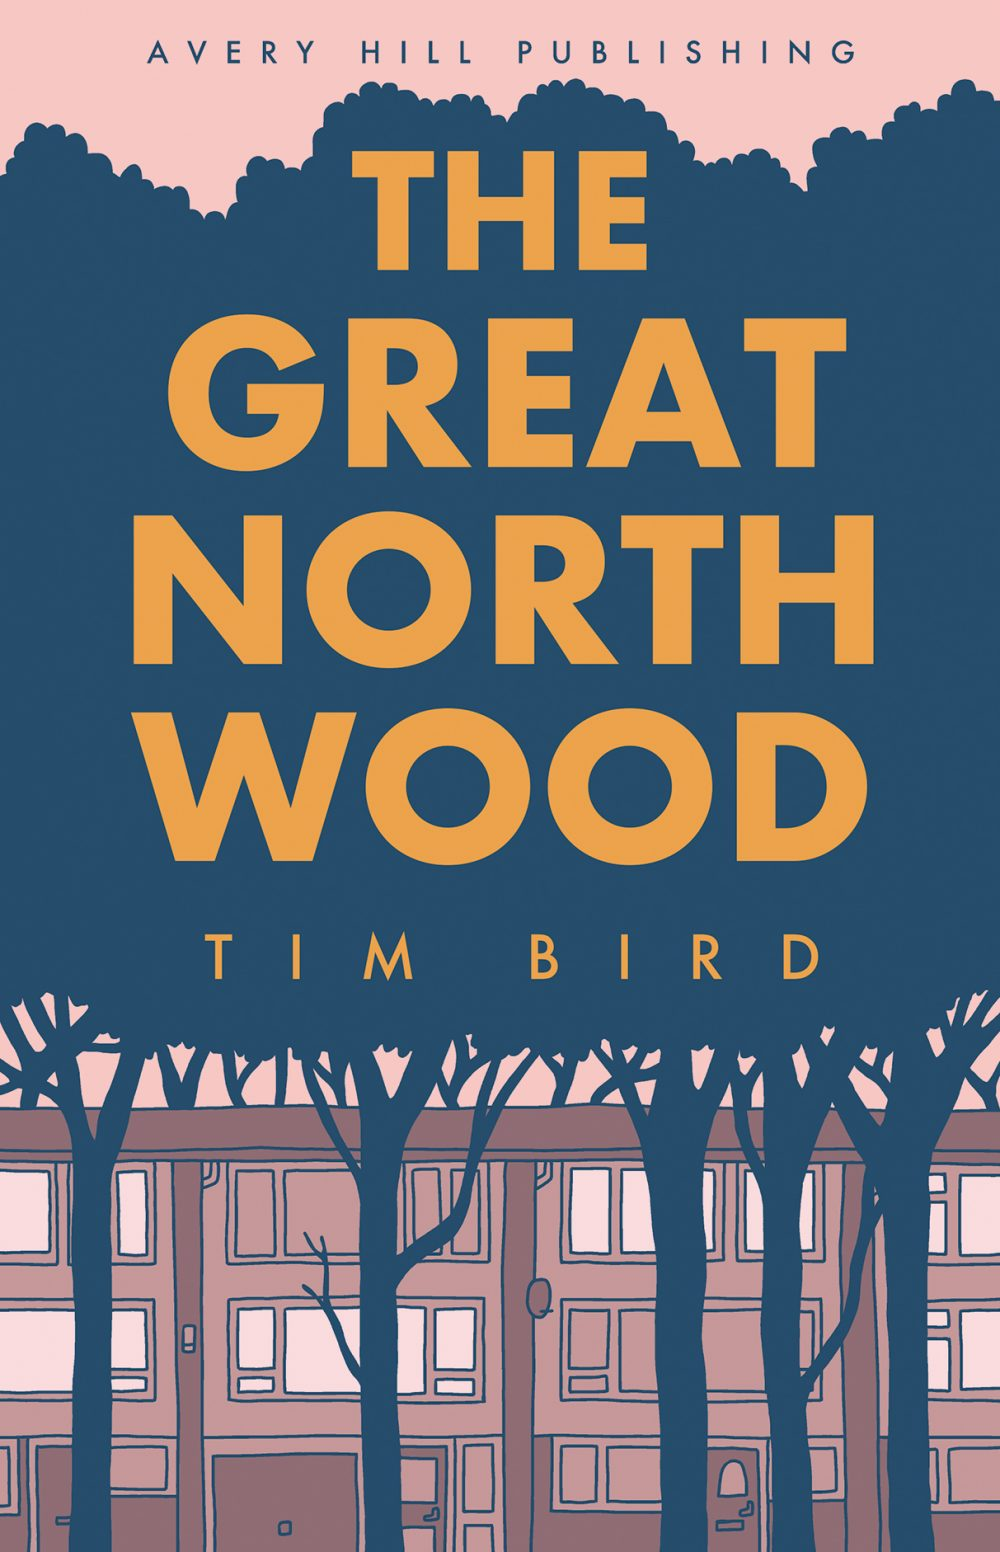 Tim Bird THE GREAT NORTH WOOD